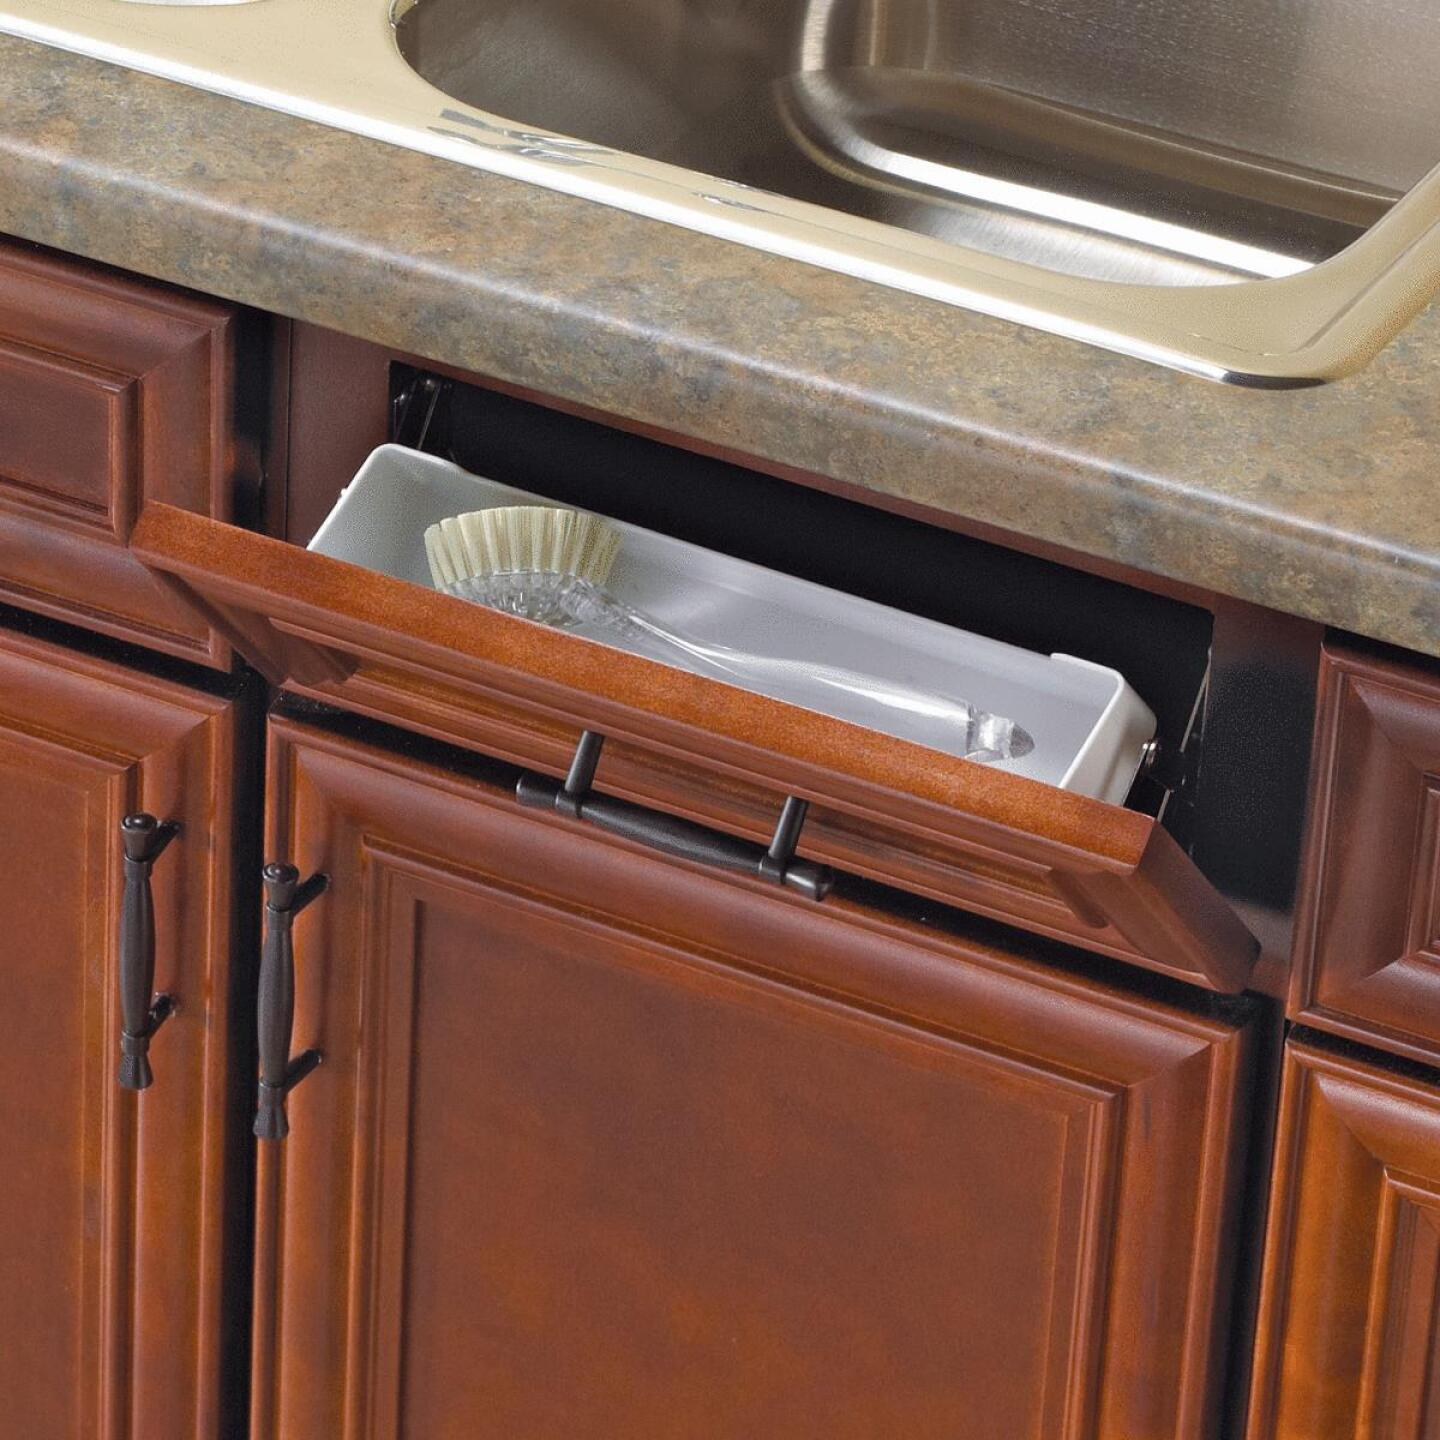 Knape & Vogt Real Solutions 11 In. White Steel In-Cabinet Sink Front Tray & Hinge Kit Image 4